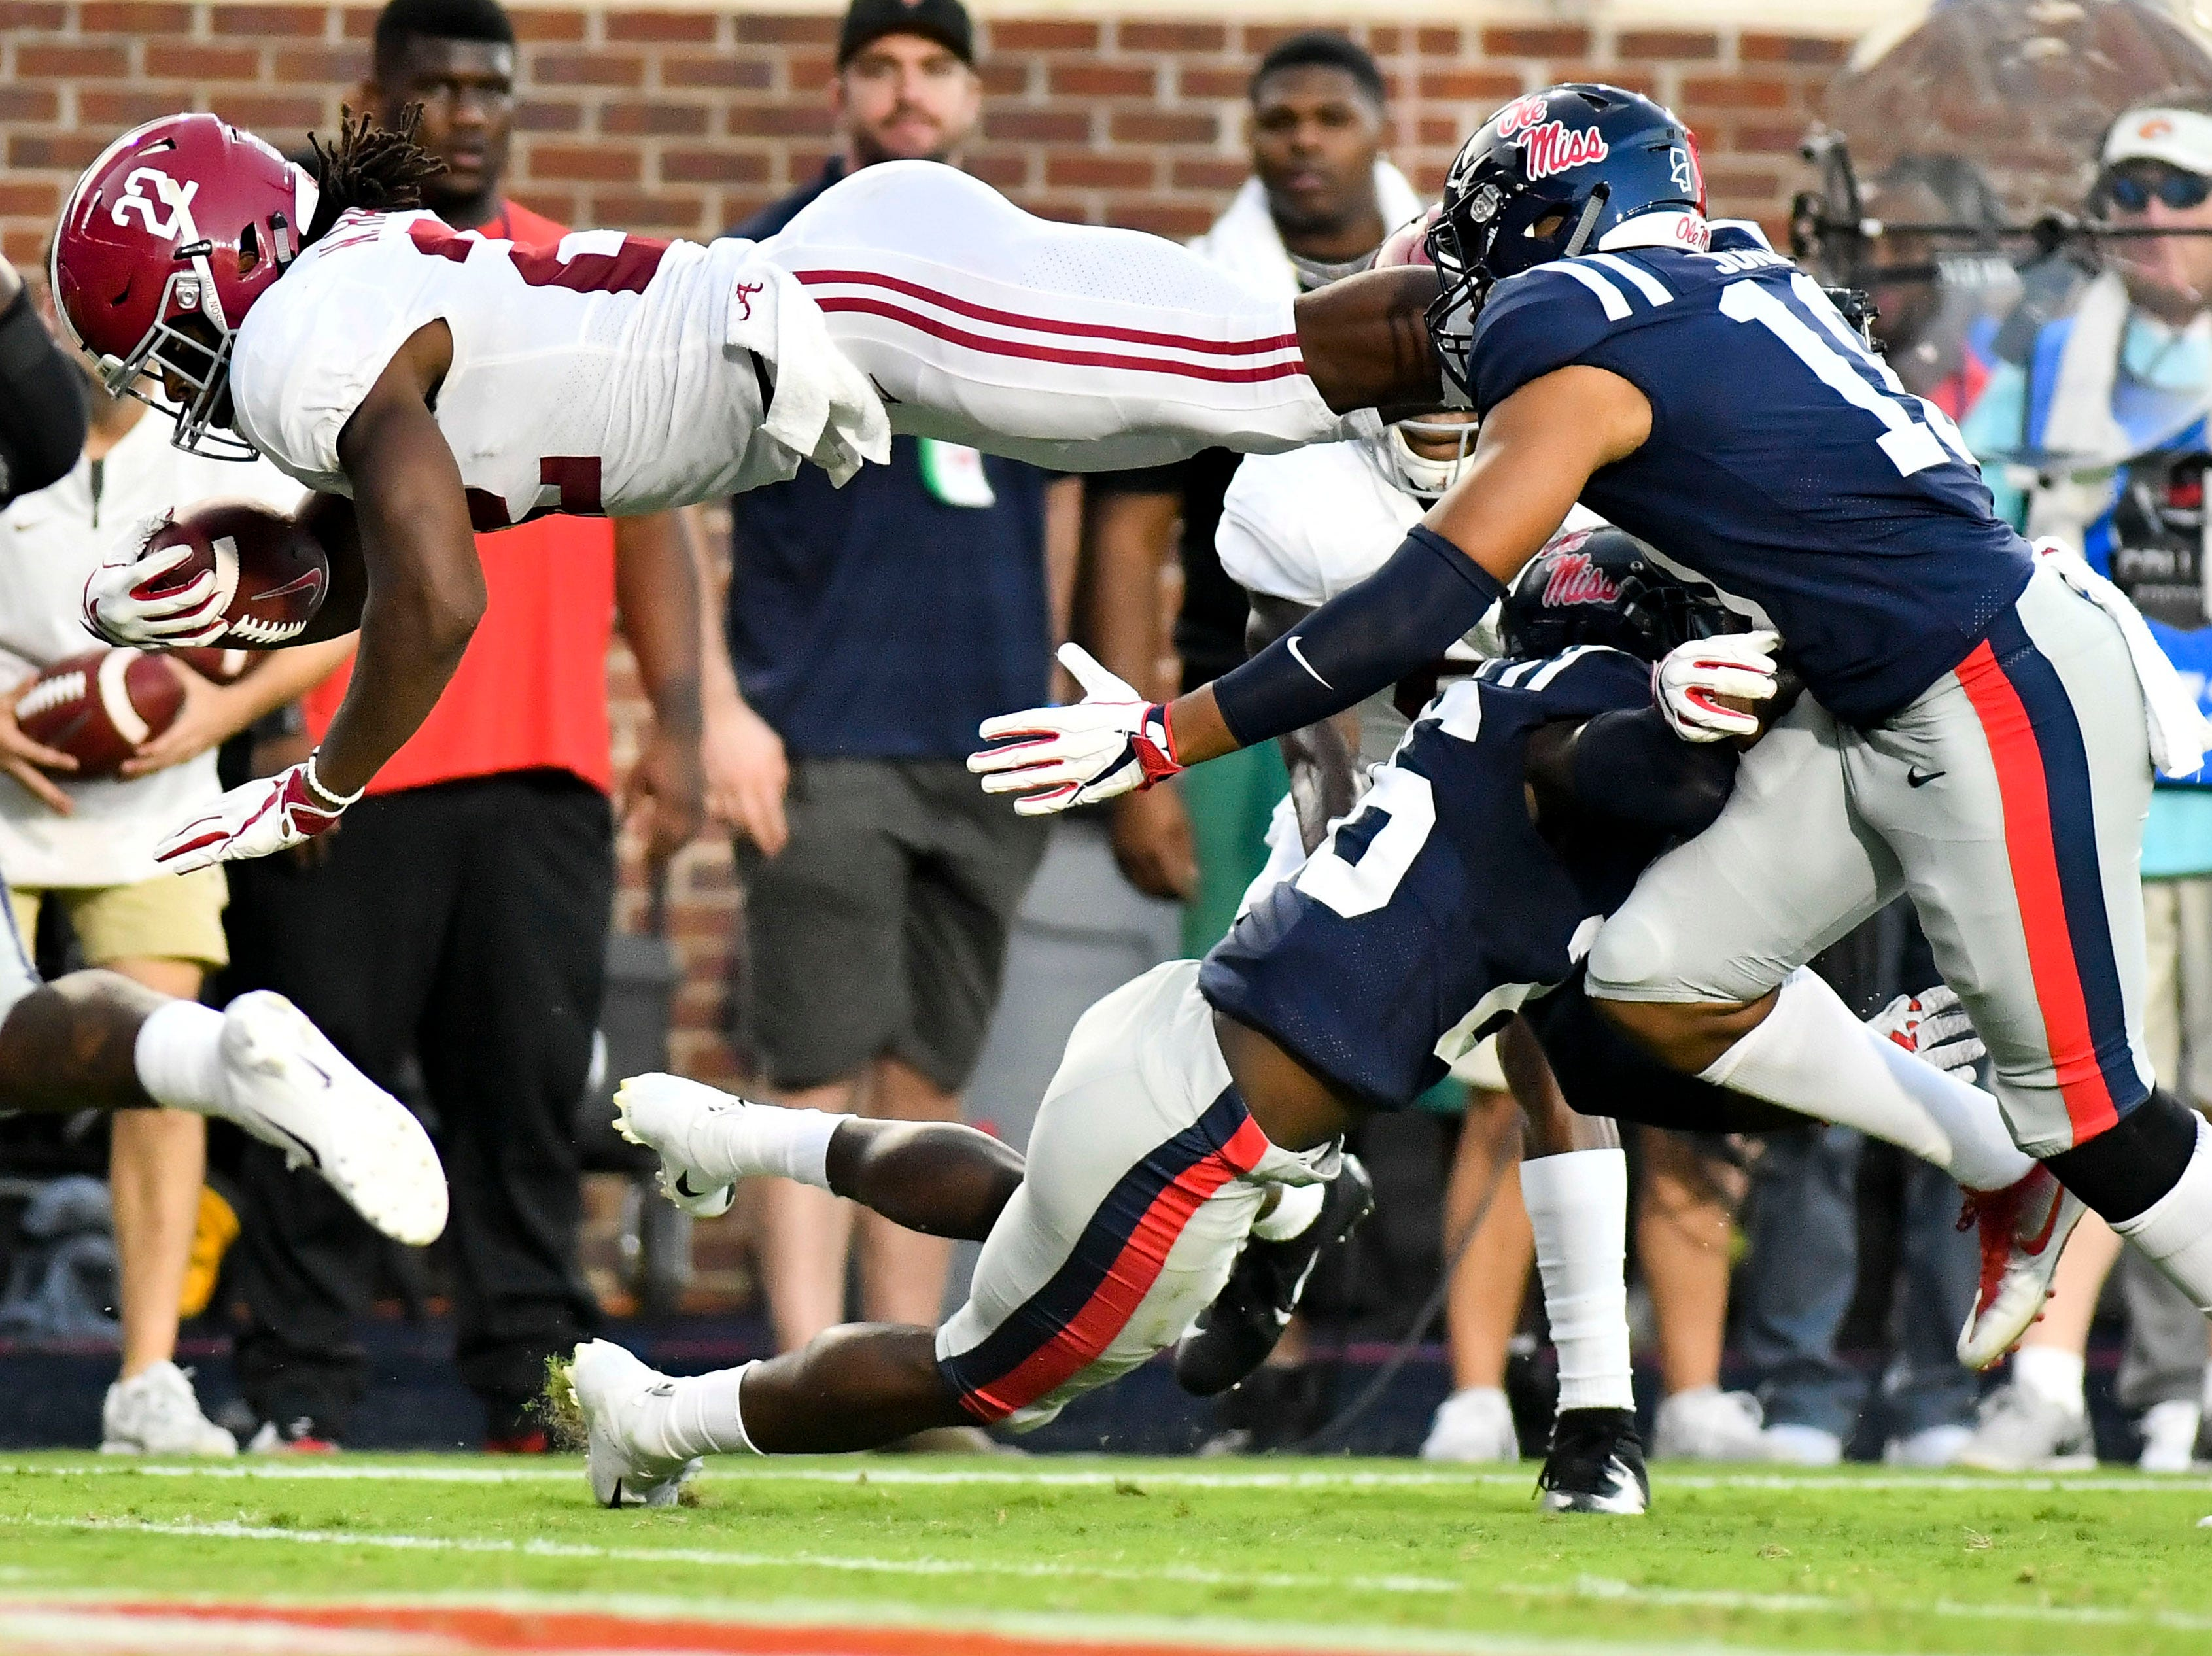 Alabama Crimson Tide running back Najee Harris (22) dives over Mississippi Rebels defensive back Jalen Julius (26) and linebacker Jacquez Jones (10) for a touchdown during the first quarter at Vaught-Hemingway Stadium.